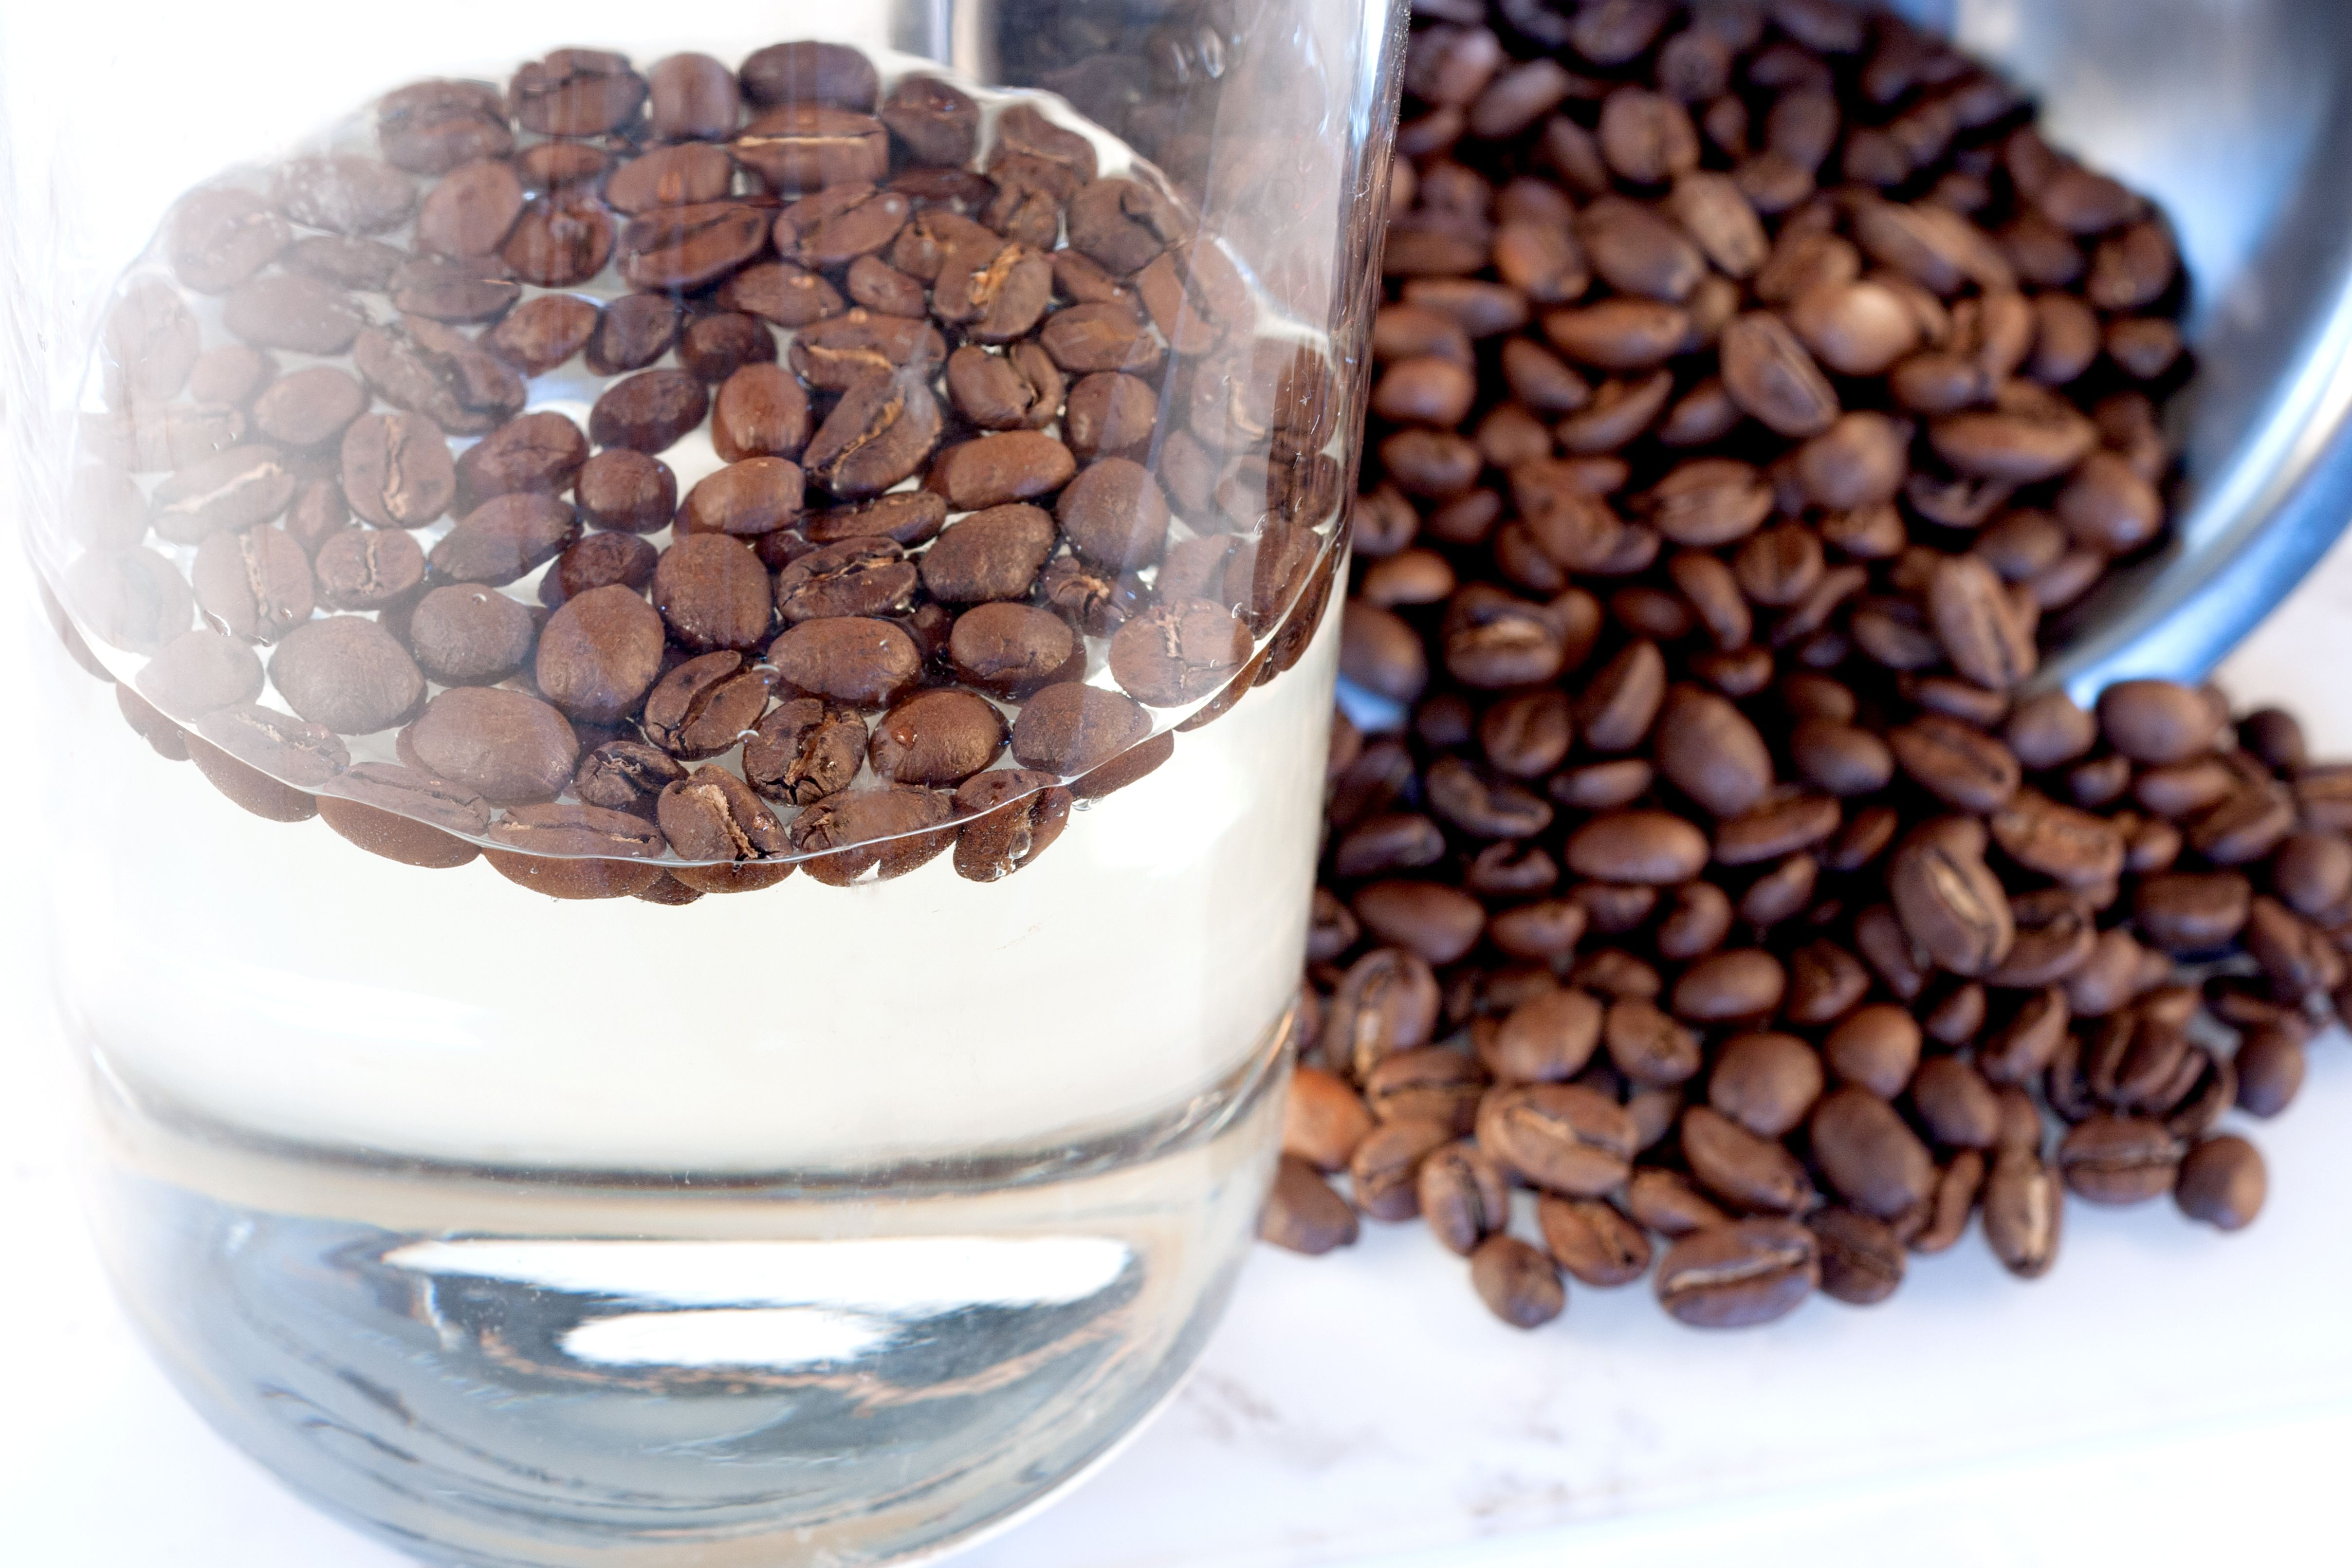 Brewed coffee is simply beans and water